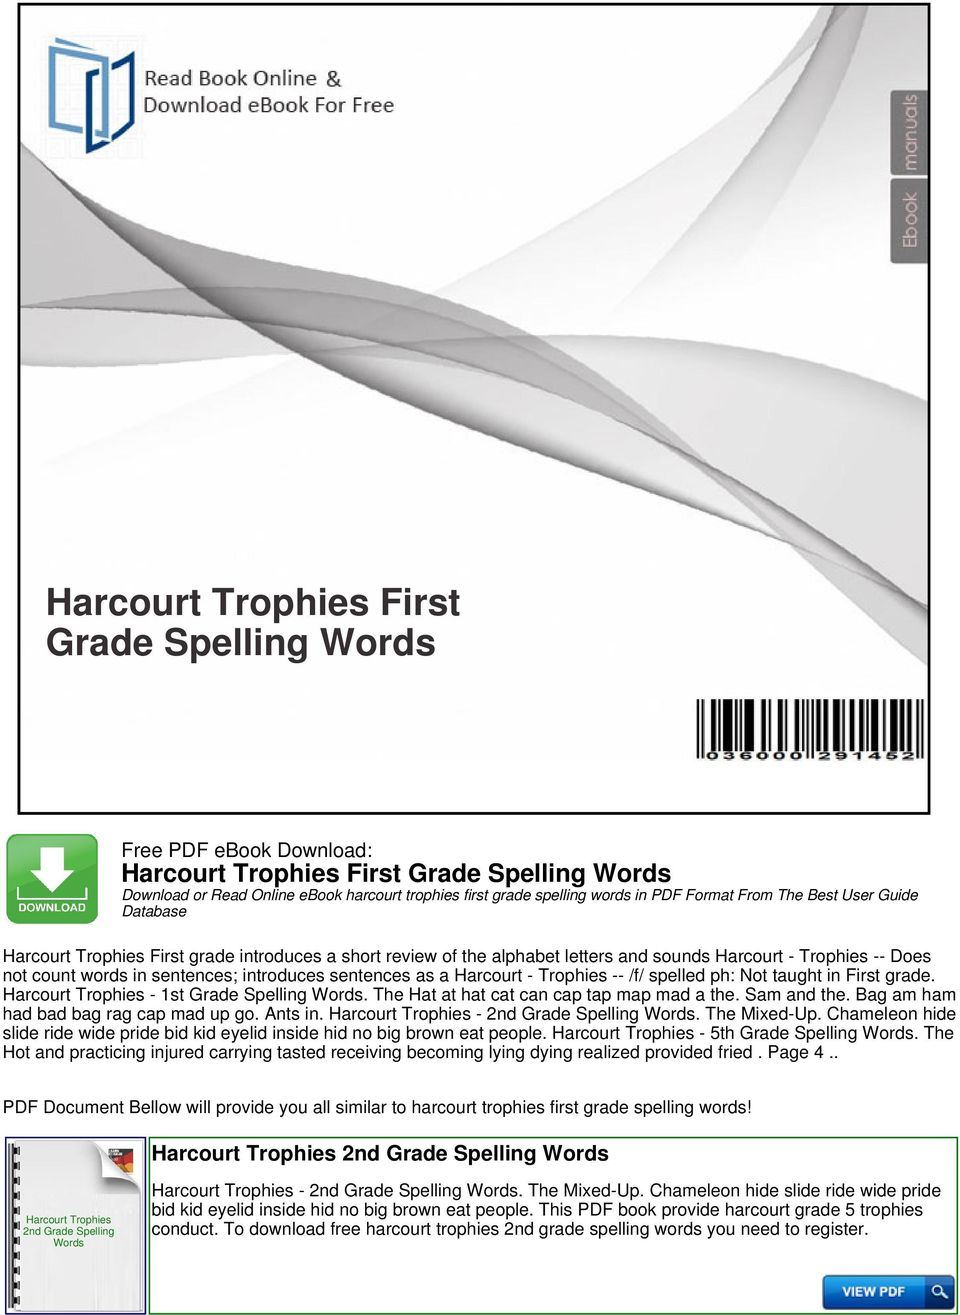 Harcourt trophies first grade spelling words pdf spelled ph not taught in first grade 1st grade spelling words the fandeluxe Choice Image